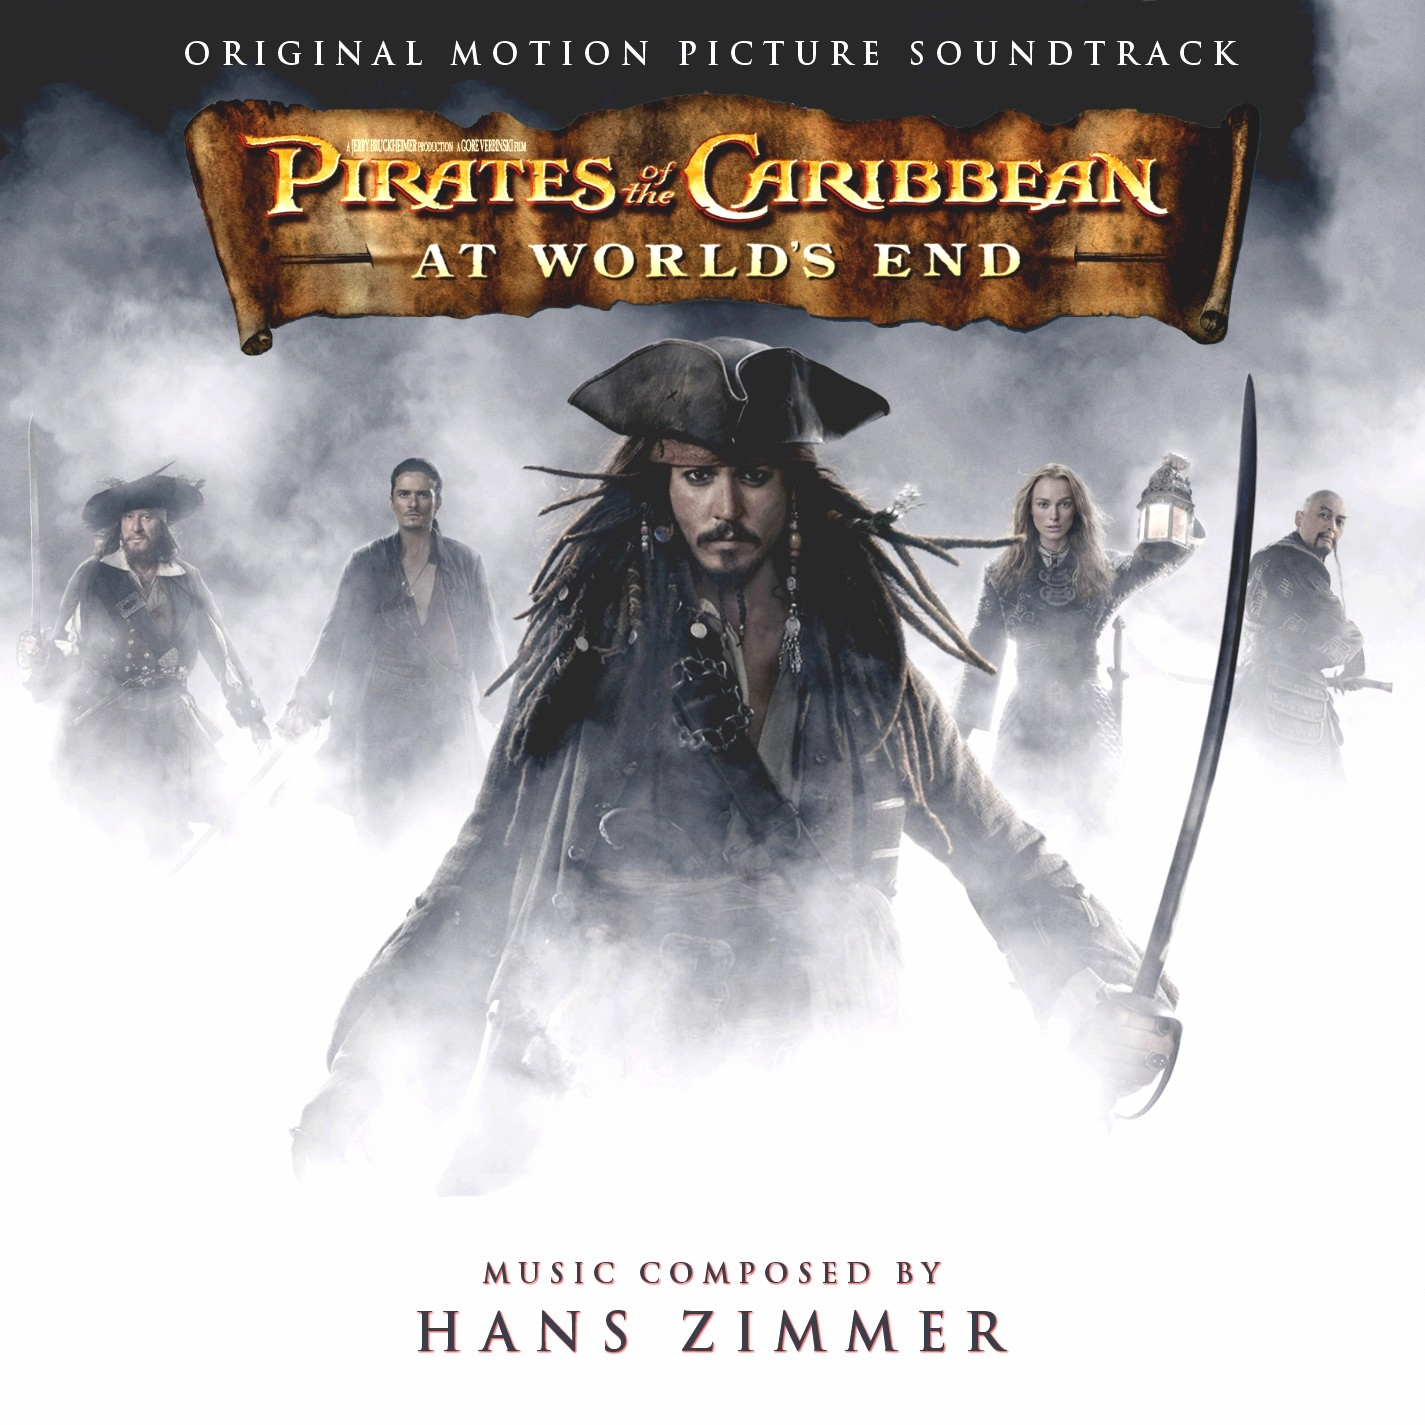 Renovatio Records: Pirates of the Caribbean: At World's End